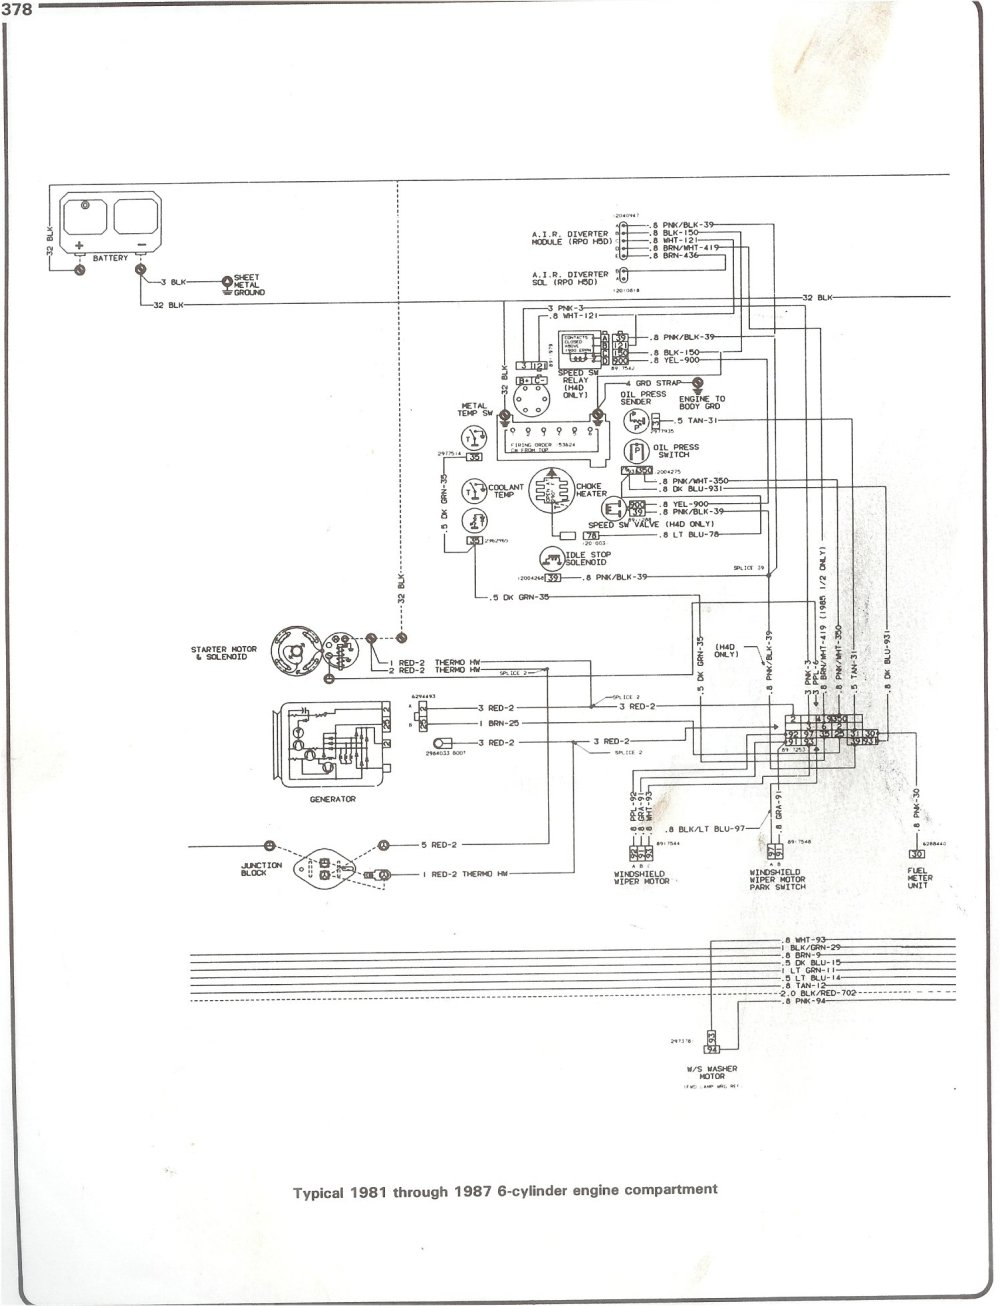 medium resolution of 1974 corvette 350 engine diagram